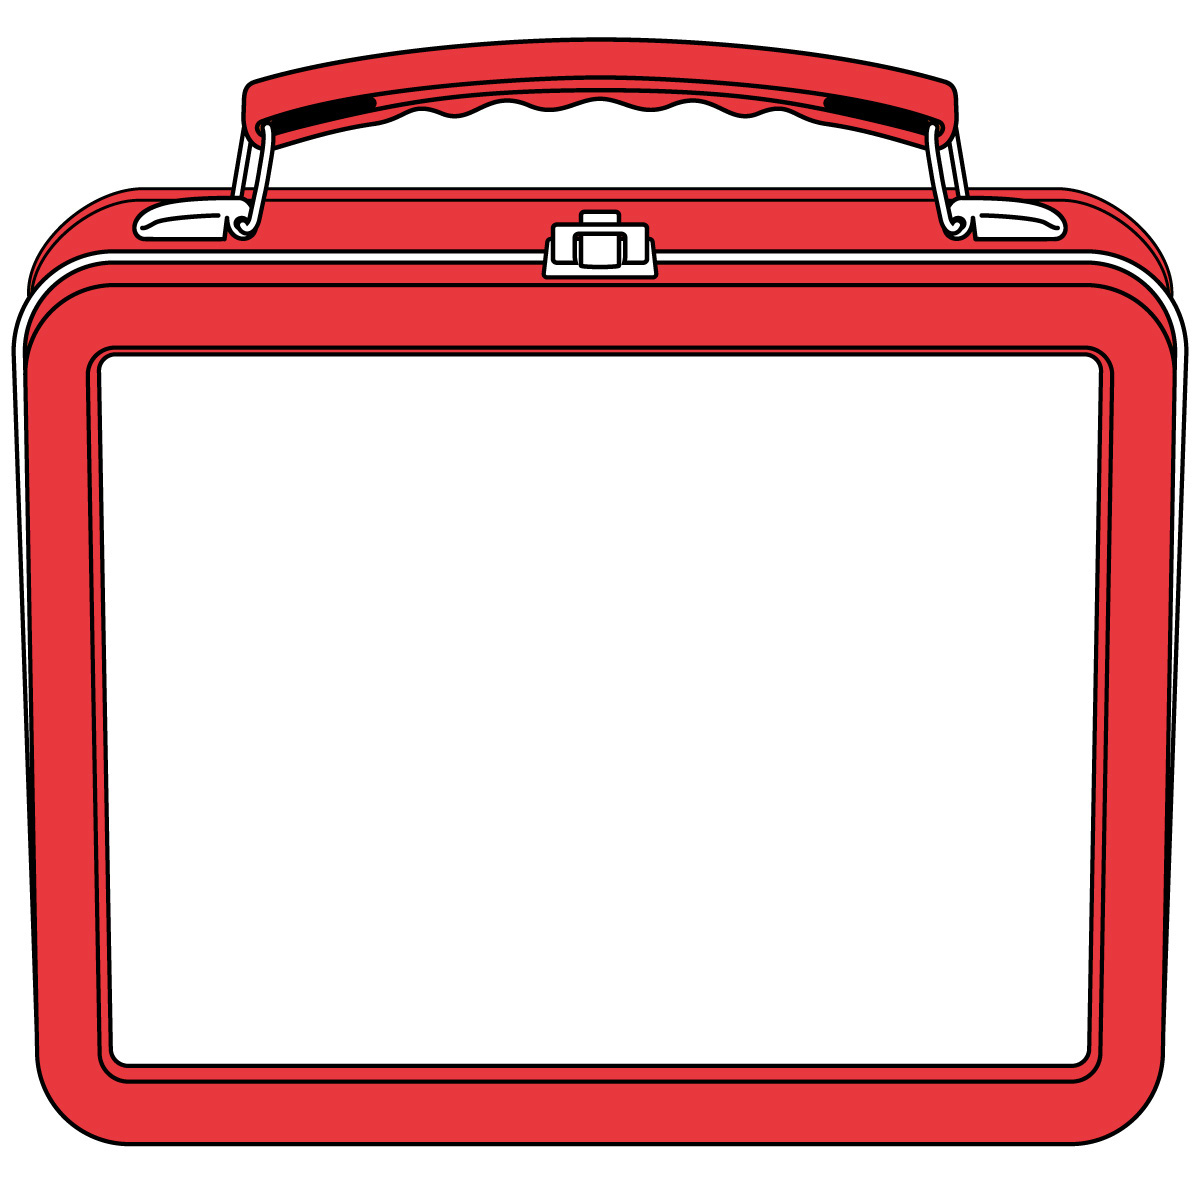 Clipart of a lunch box png library stock Lunch Box Clipart | Clipart Panda - Free Clipart Images png library stock